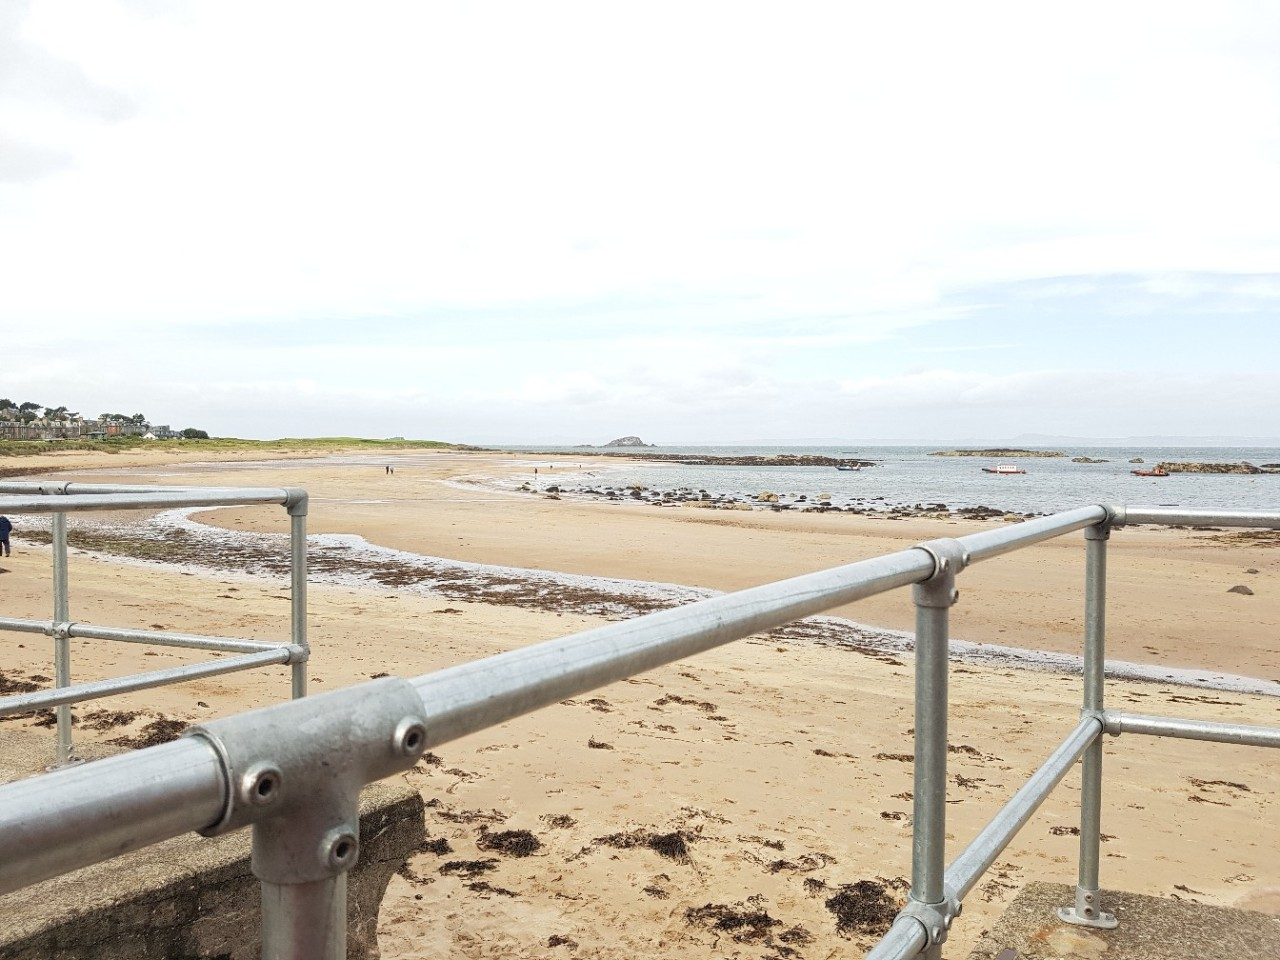 Berwick Handrail and Tube Clamps Project on the beach